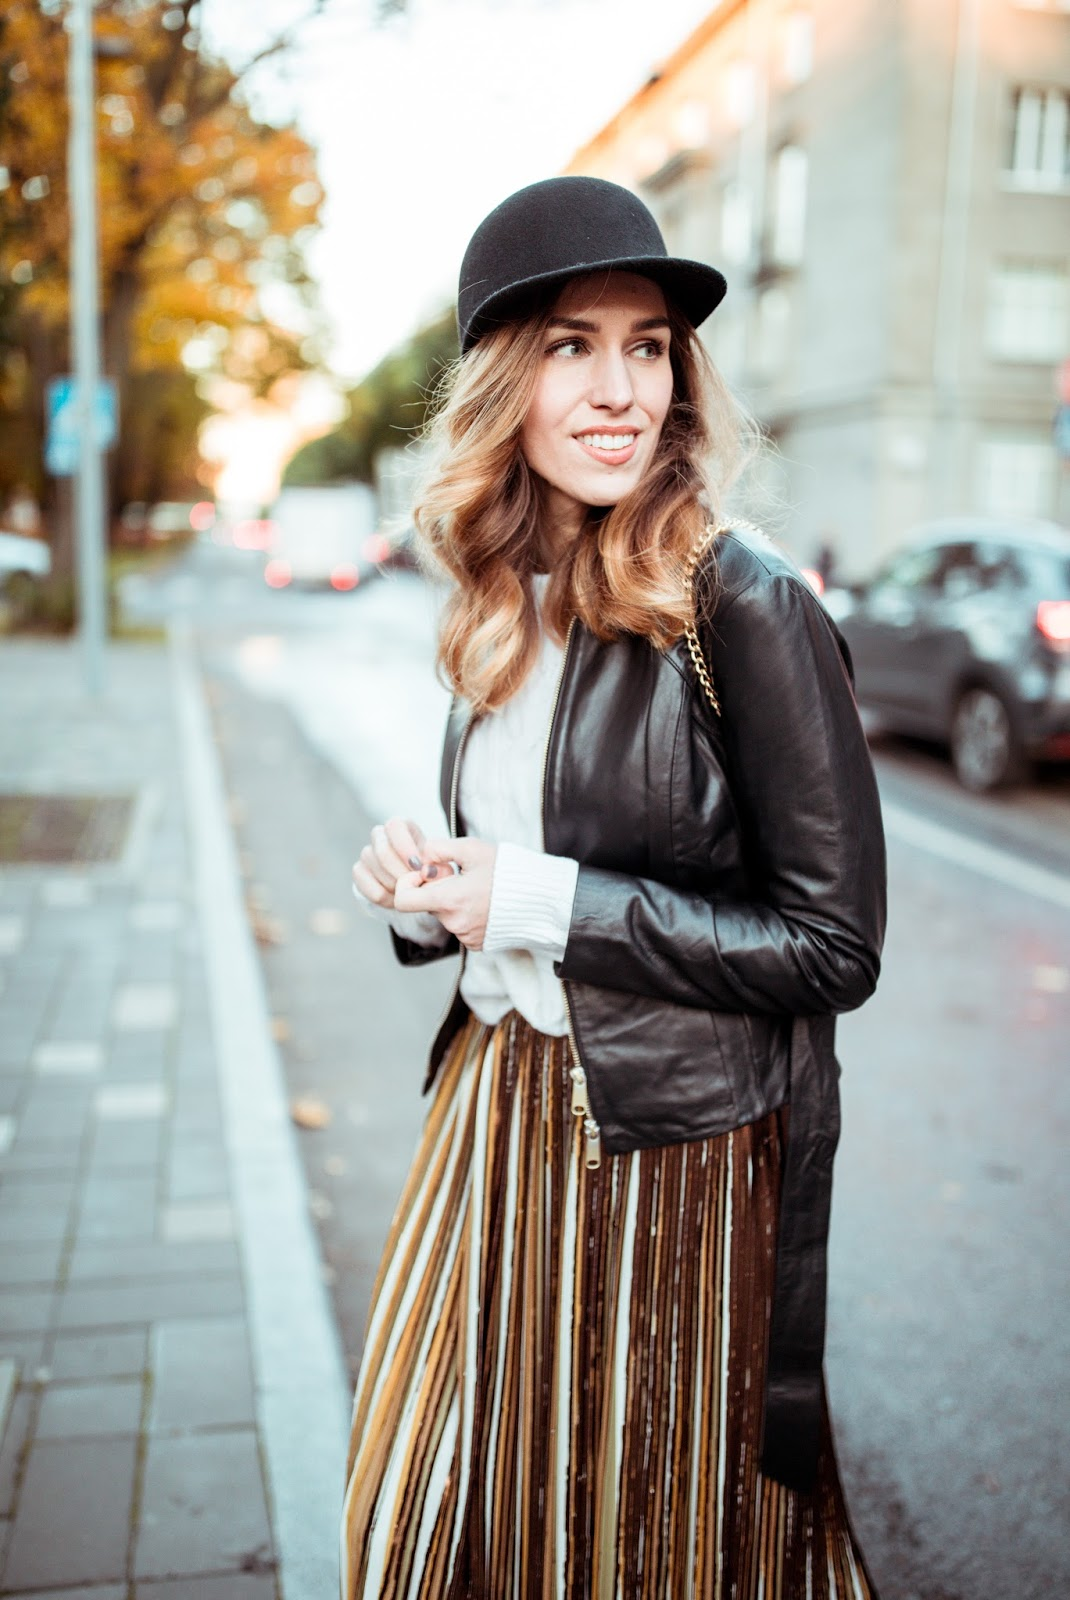 leather jacket felt cap outfit fall